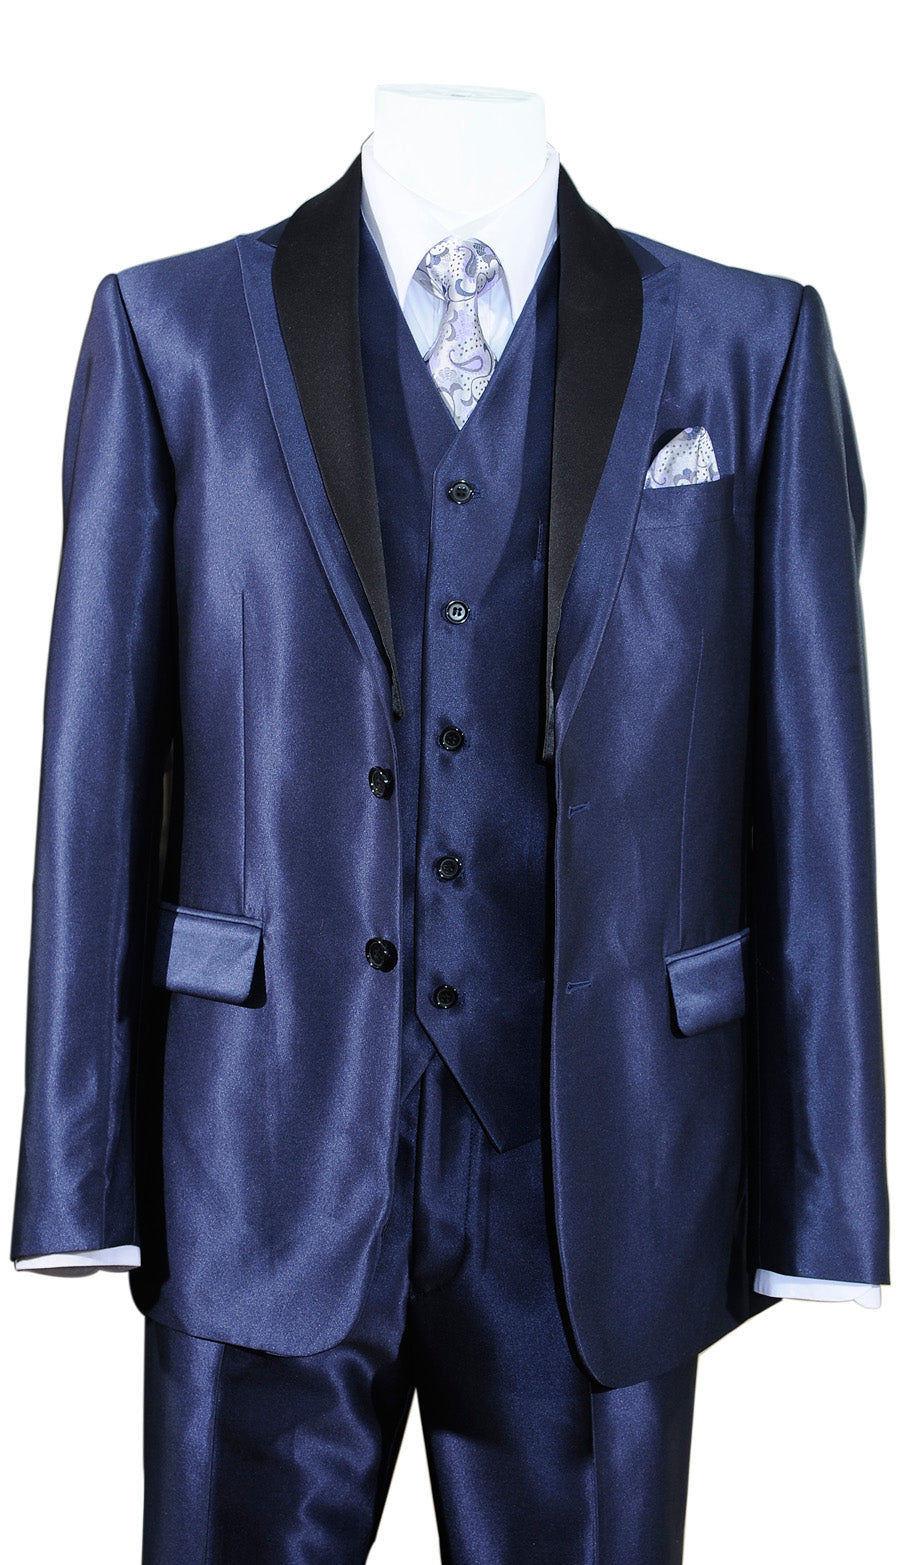 Fortino Landi Suit 5702V5-Navy - Church Suits For Less